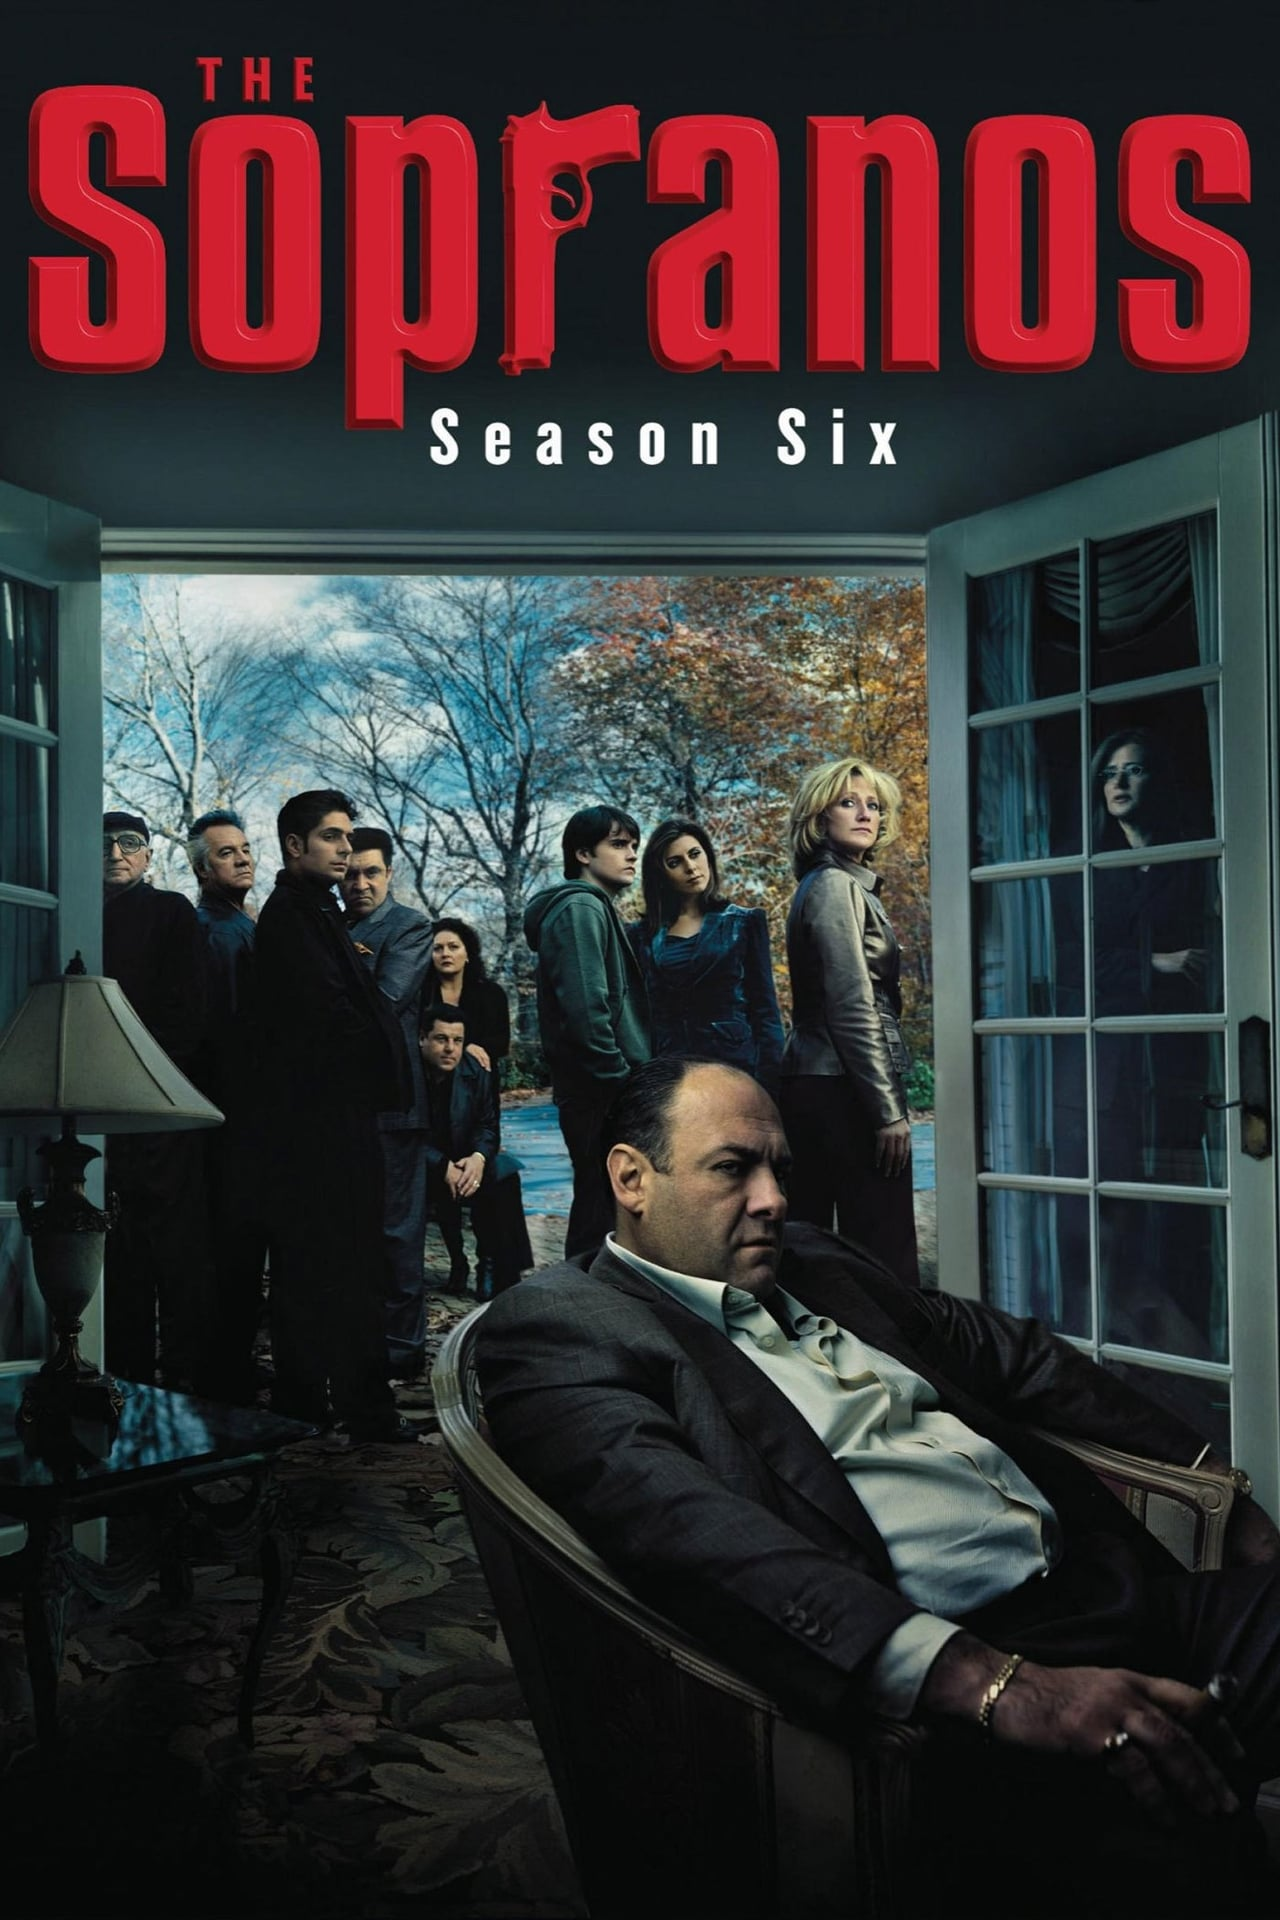 Putlocker The Sopranos Season 6 (2006)